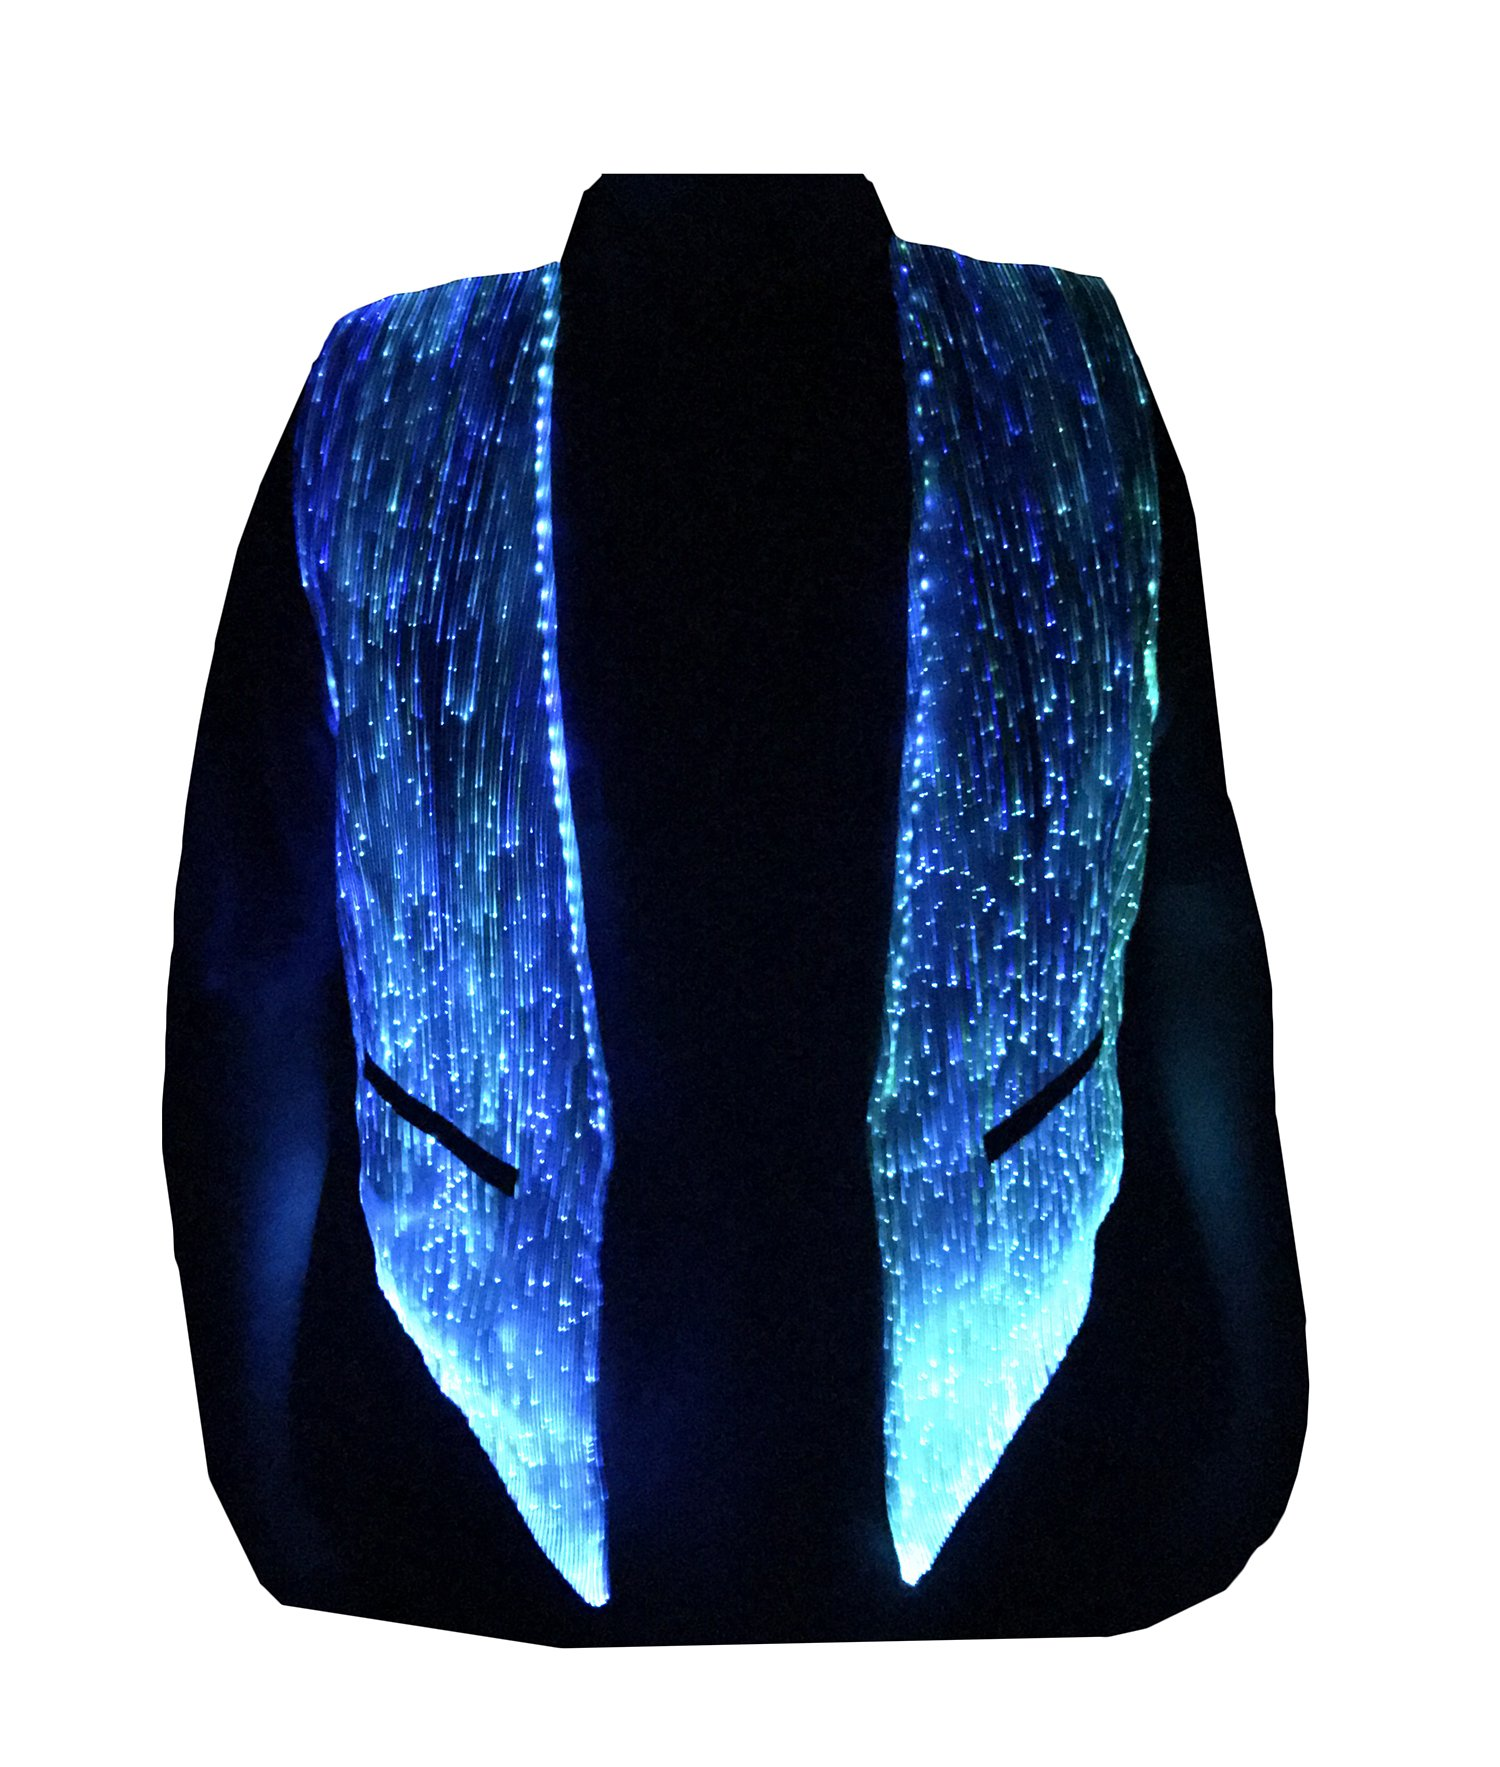 LED Fiber Optic Waistcoat Light up Vest for Men Fashion Glow in The Dark Luminous Vest (M, White)